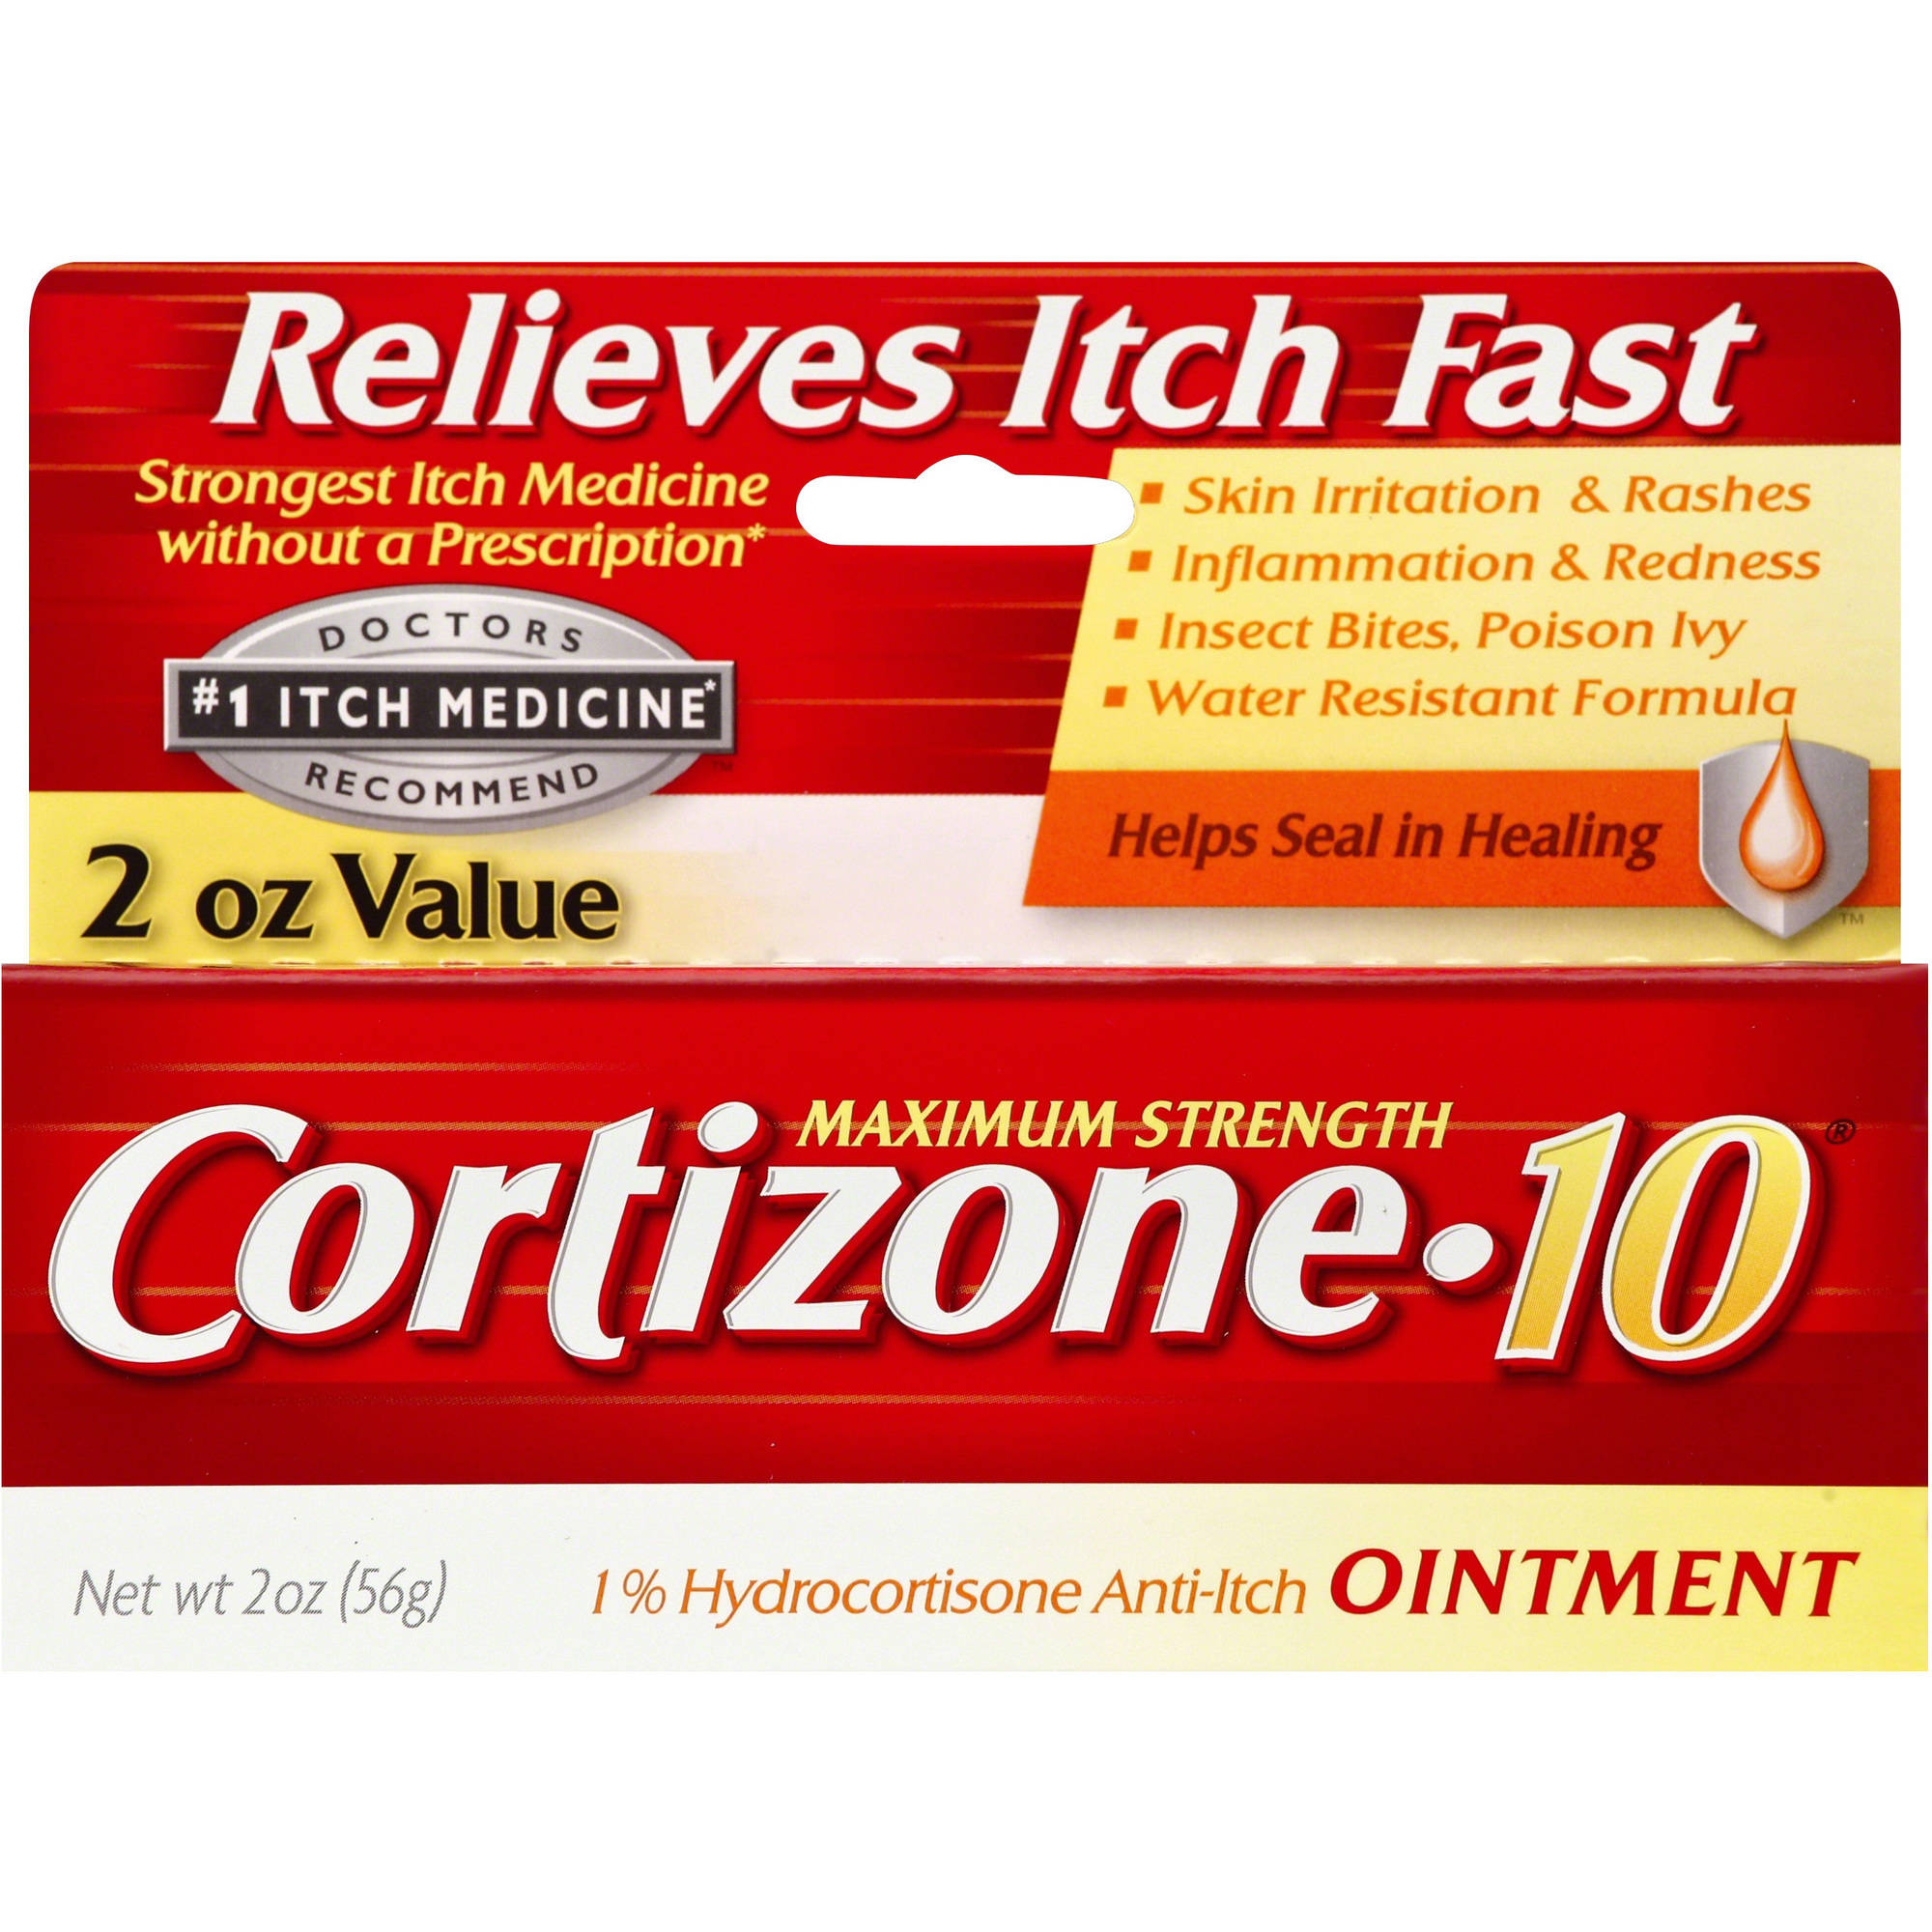 Cortizone 10 Anti-Itch Ointment, 2 oz